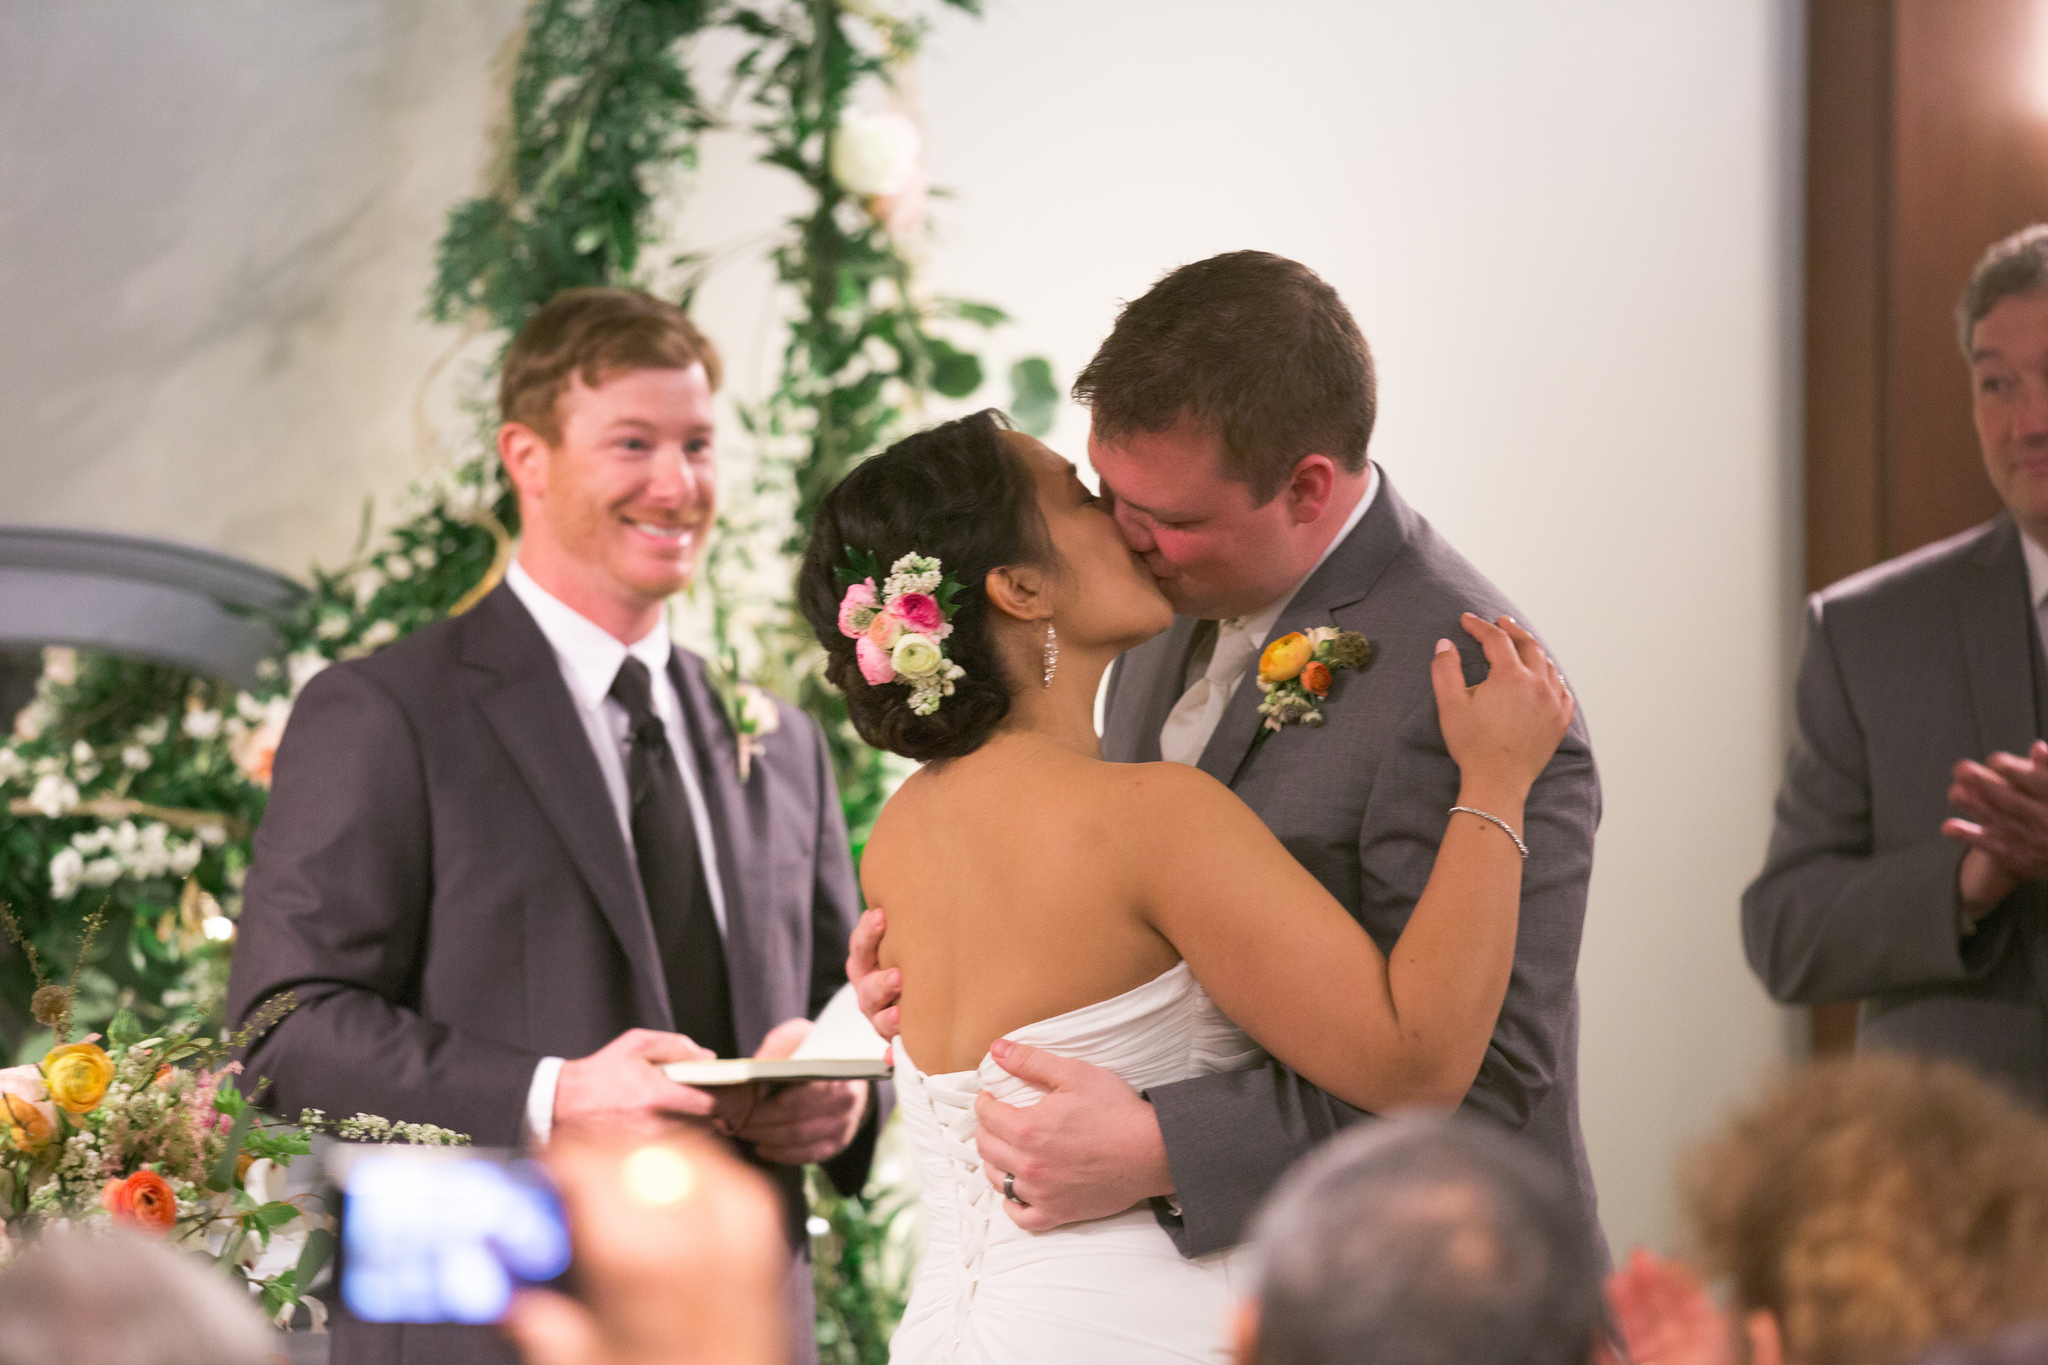 the couple's best friend, Alan, officiated the nuptials in this photo